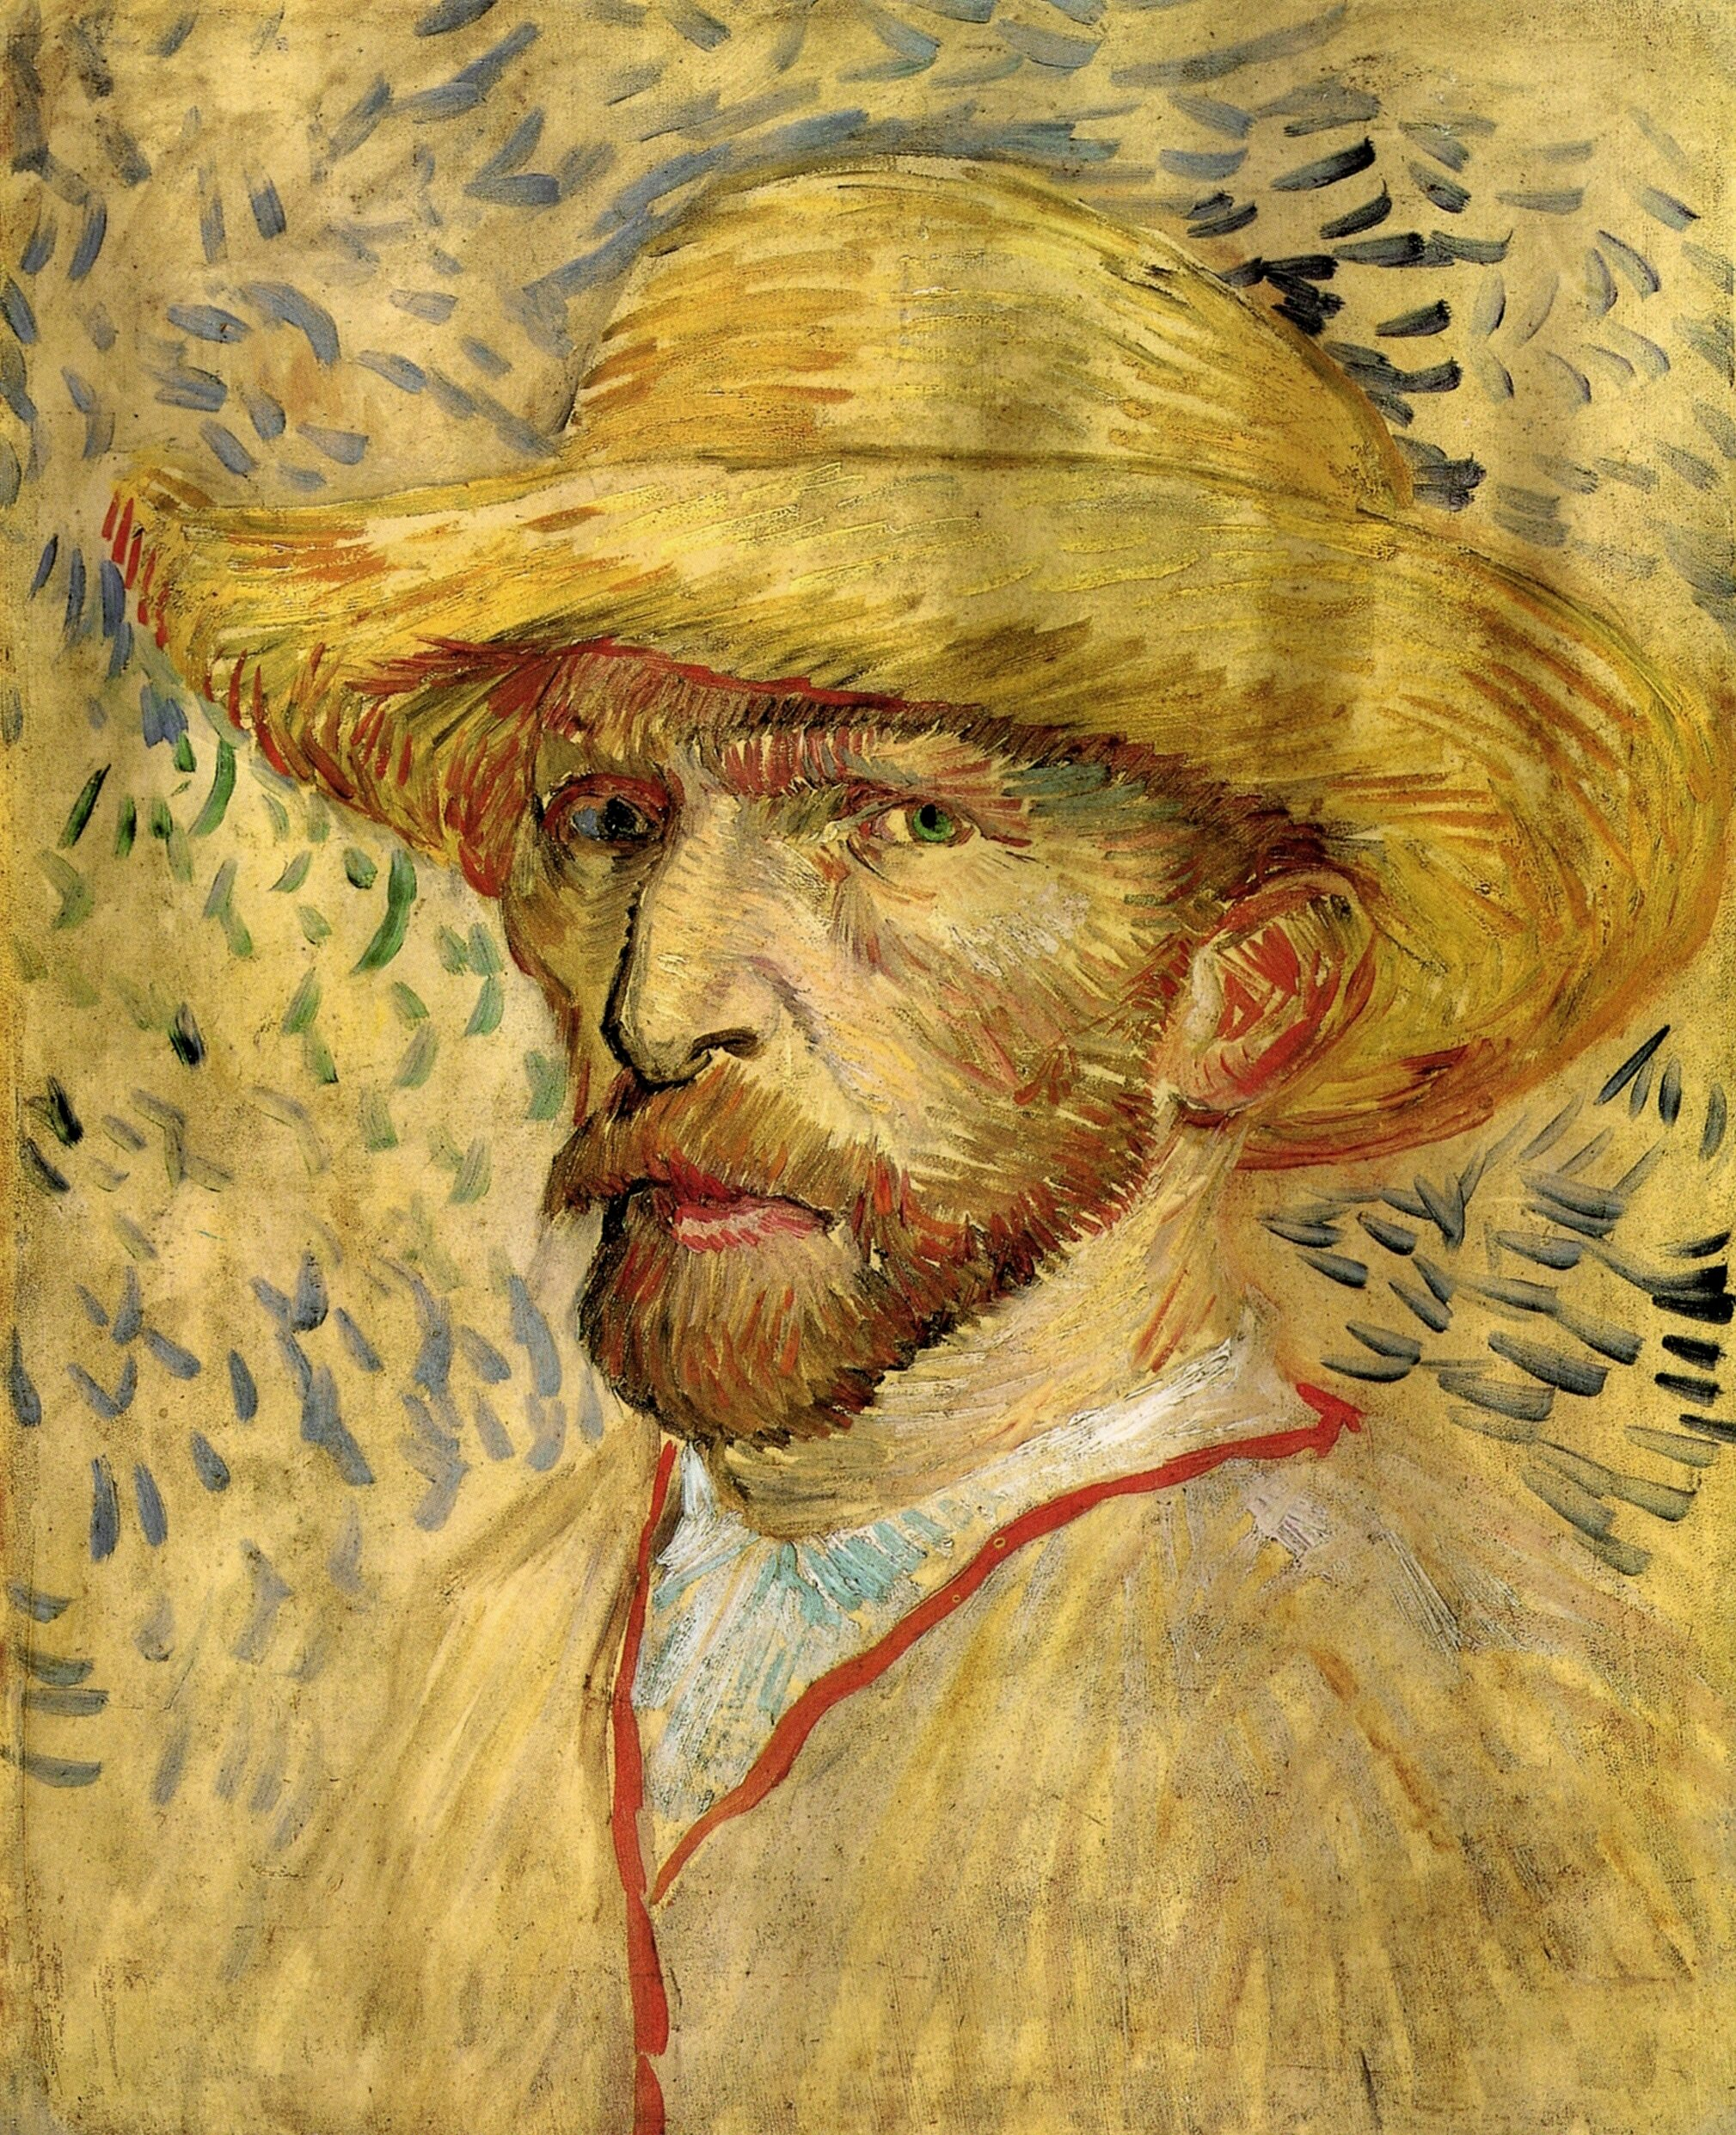 a biography and life work of vincent van gogh a dutch painter The highly popular song vincent by don mclean was a tribute to van gogh - imdb mini biography van goff' 'gog' or 'goe' the accurate dutch a painter's life.